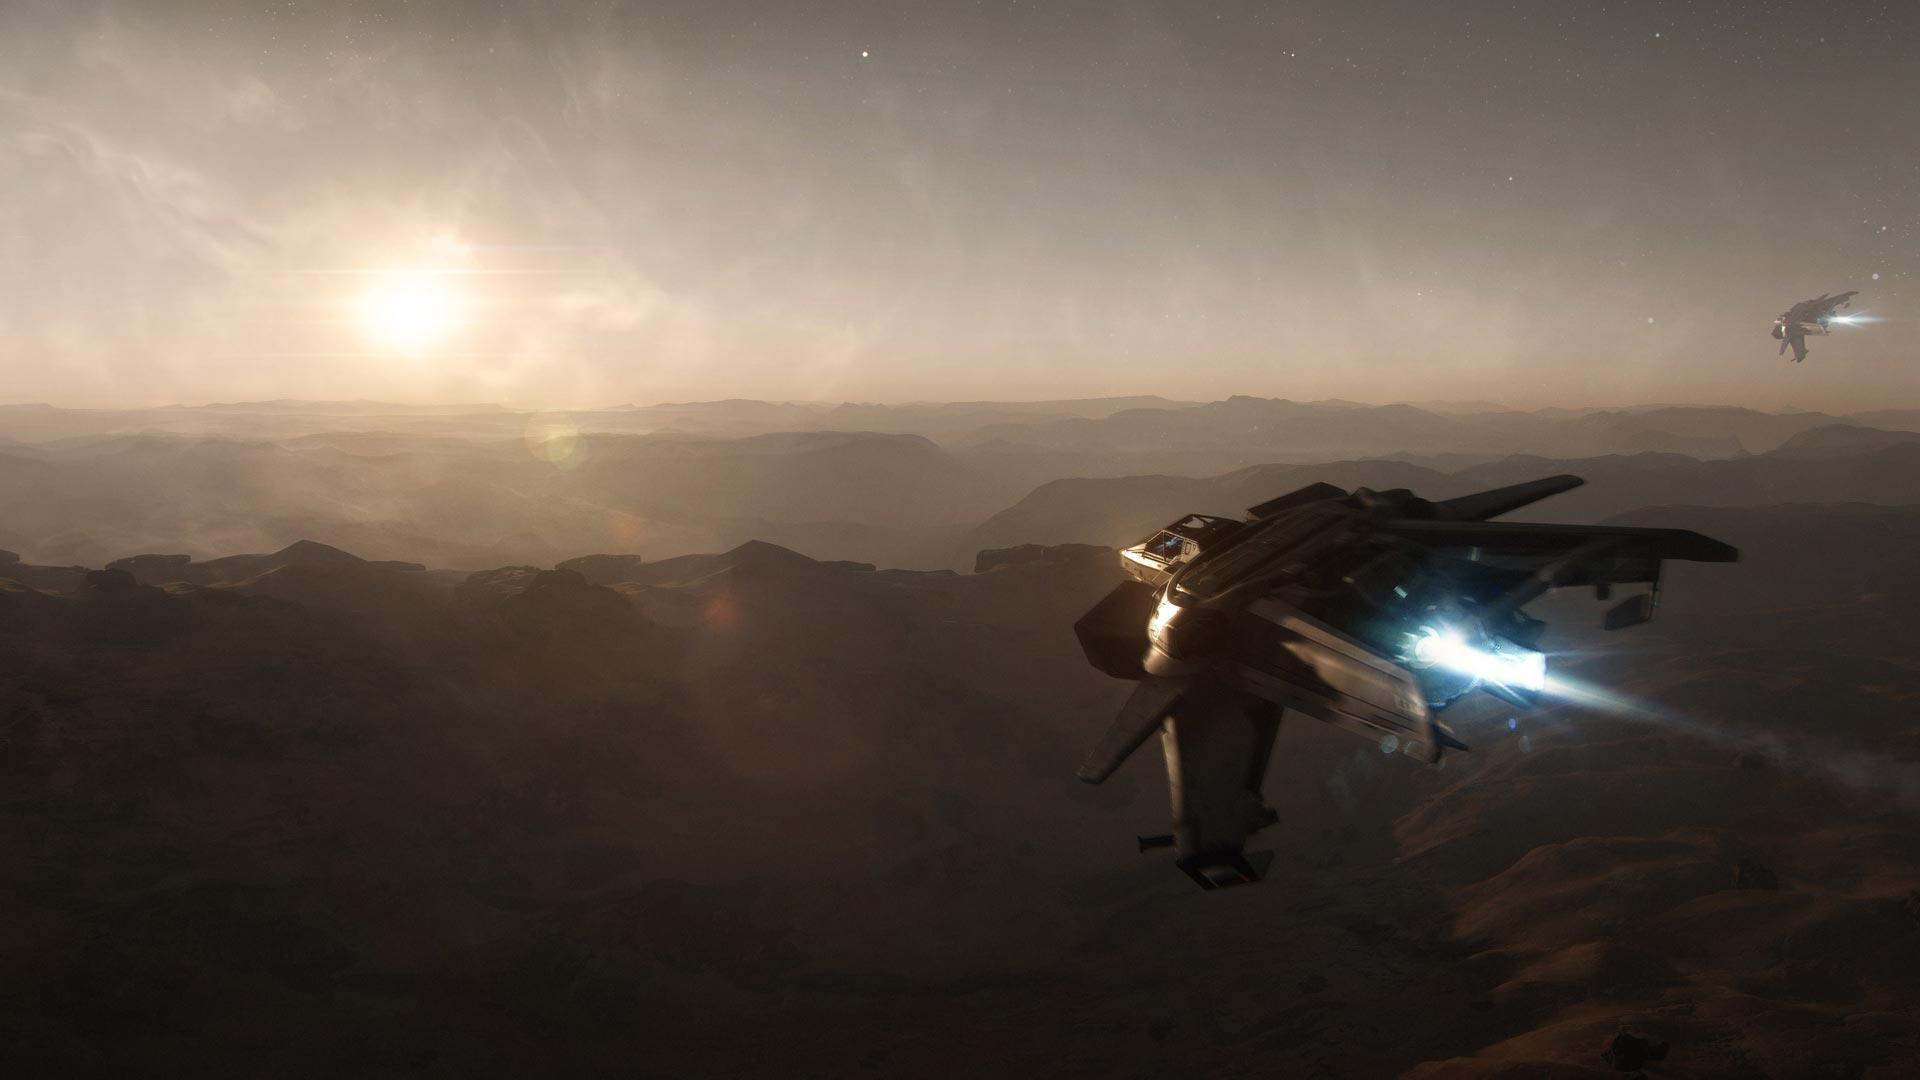 Star Citizen progress and details, new hope?